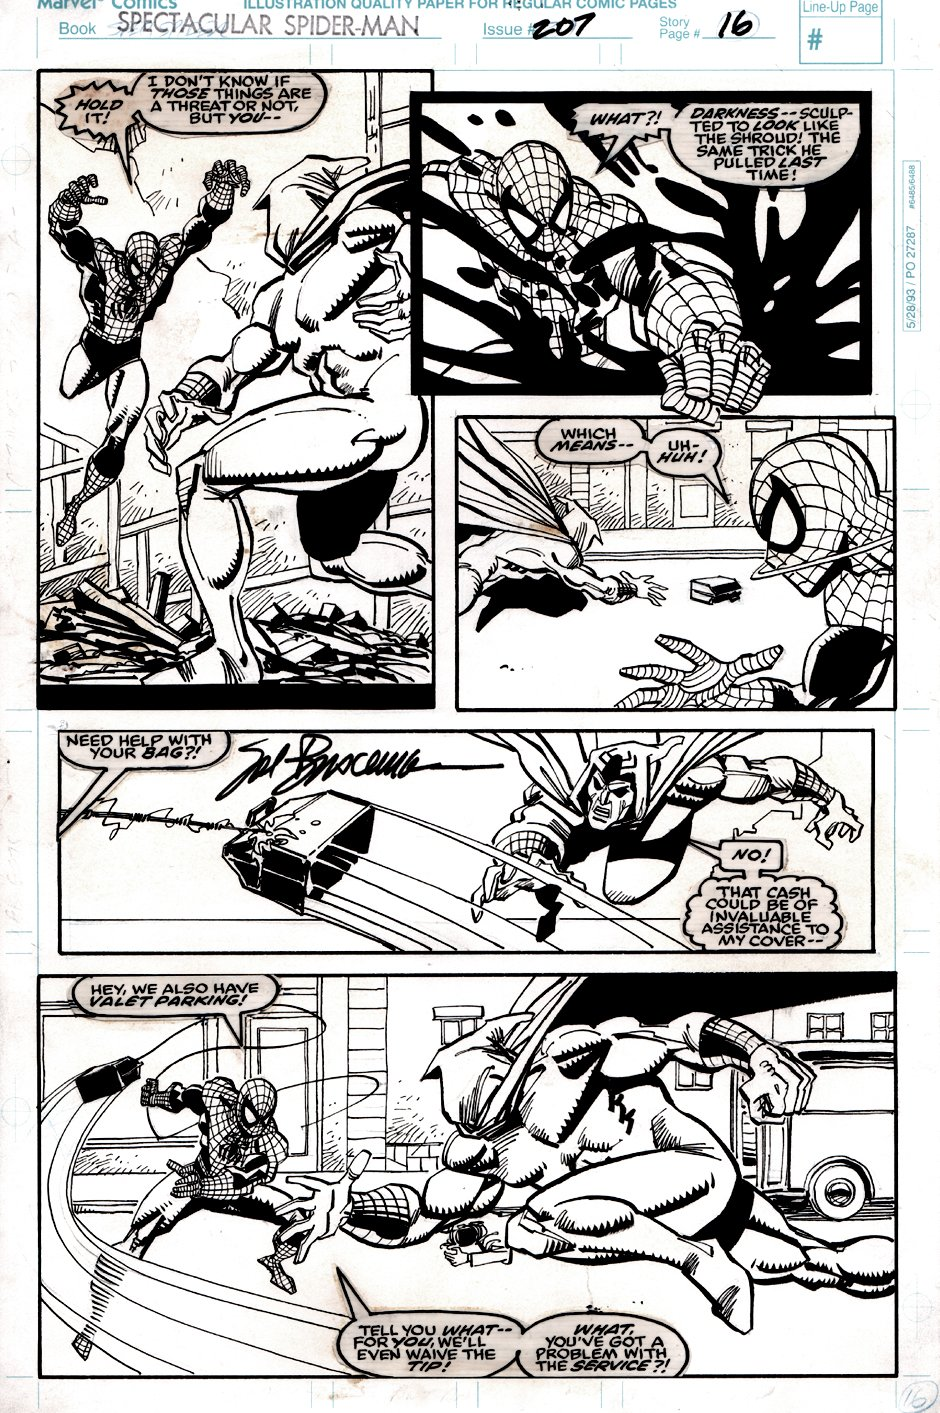 Spectacular Spider-Man #207 p 16 (Spider-Man Battles The Shroud In EVERY PANEL!) 1993